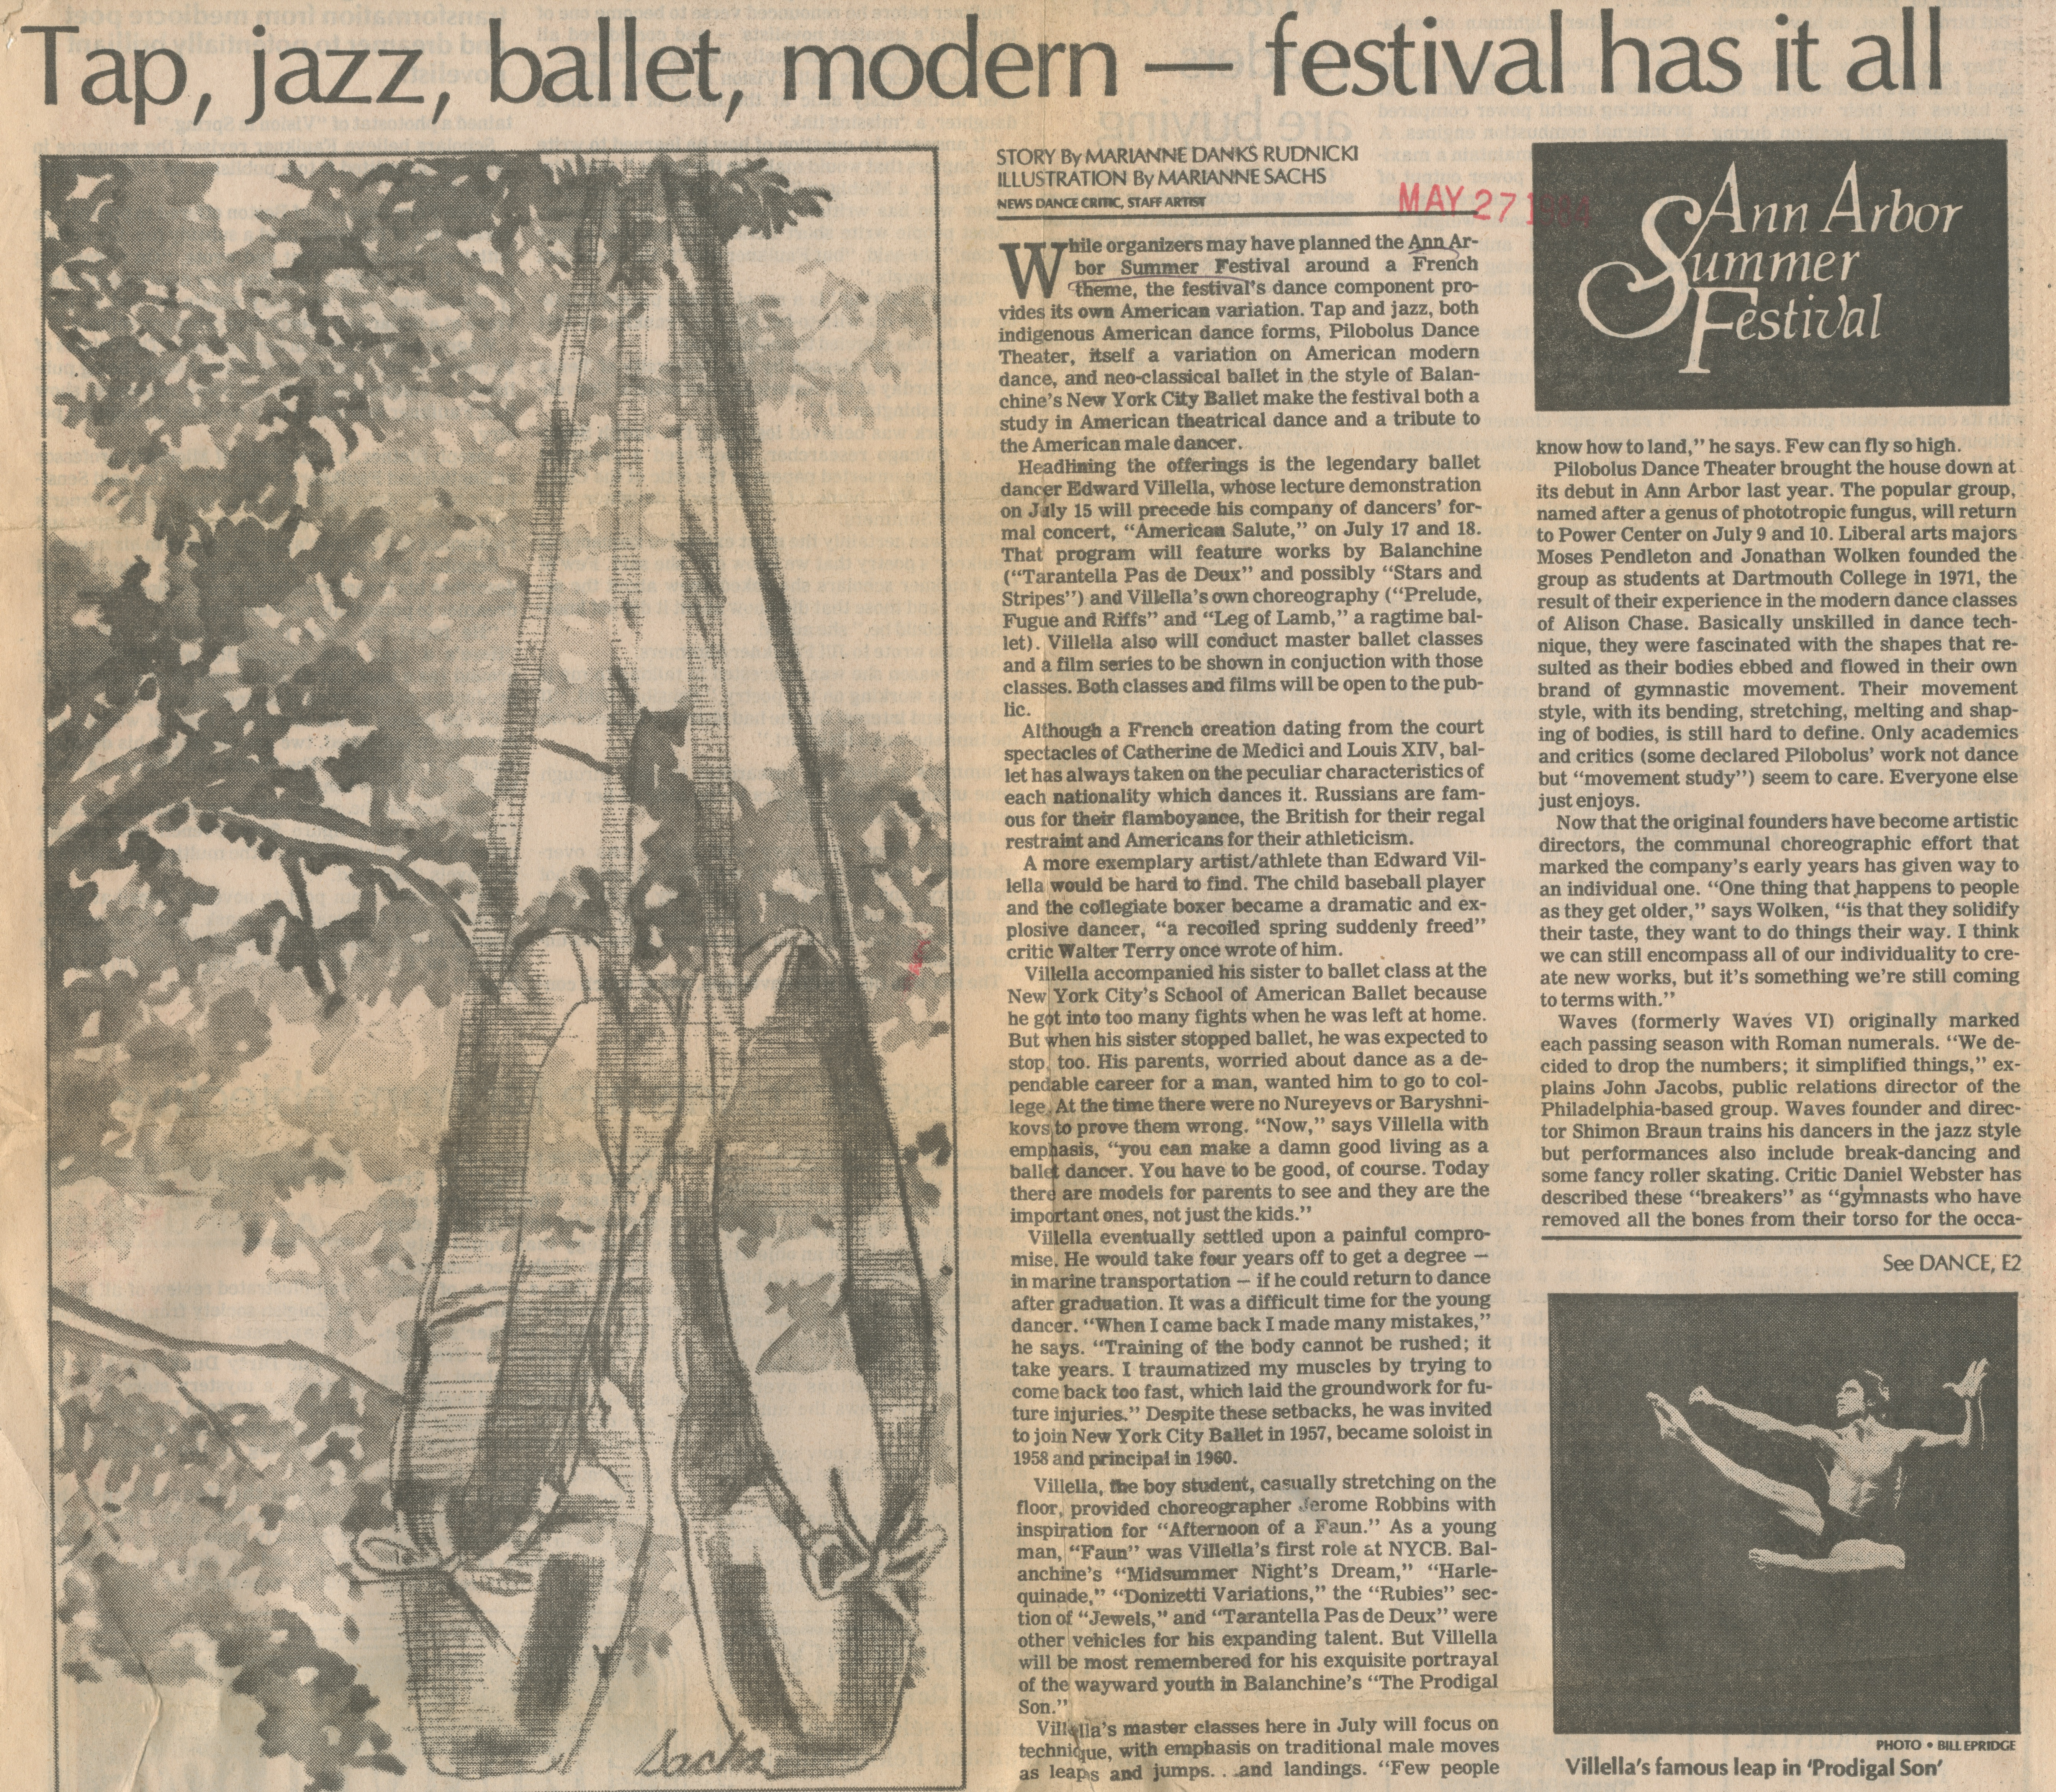 Tap, jazz, ballet, modern - festival has it all image